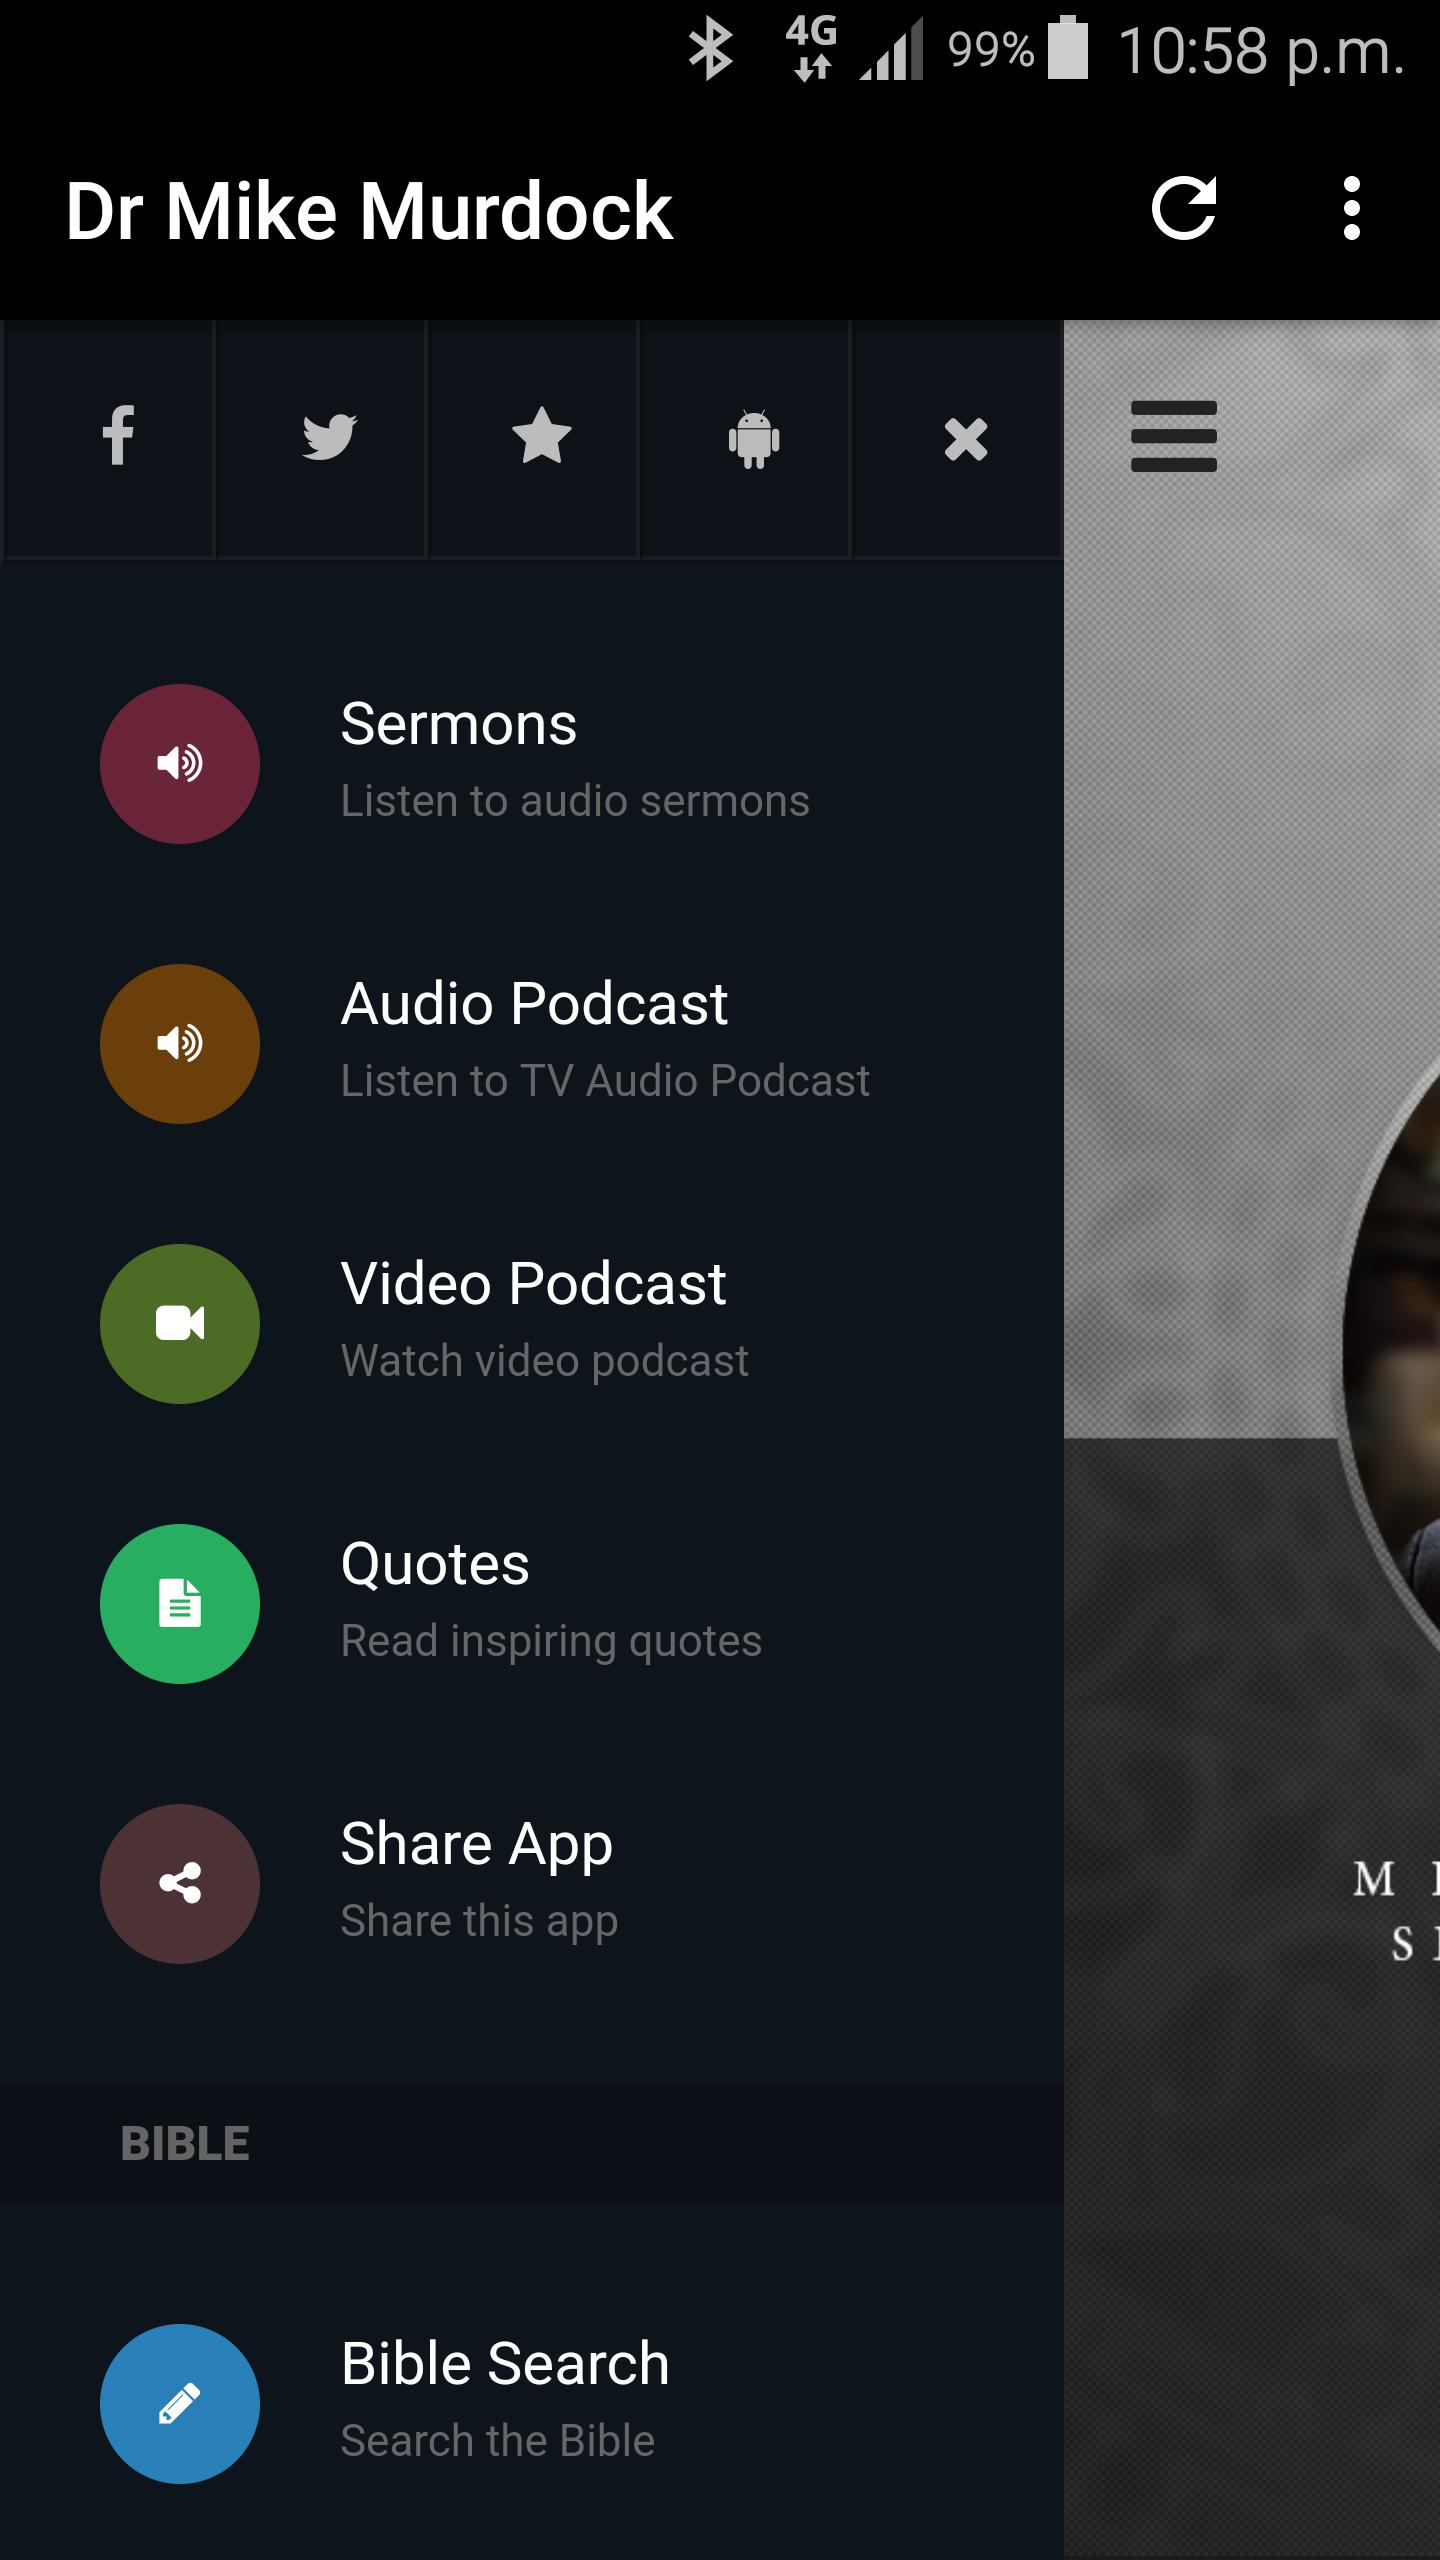 Dr Mike Murdock's Sermons for Android - APK Download